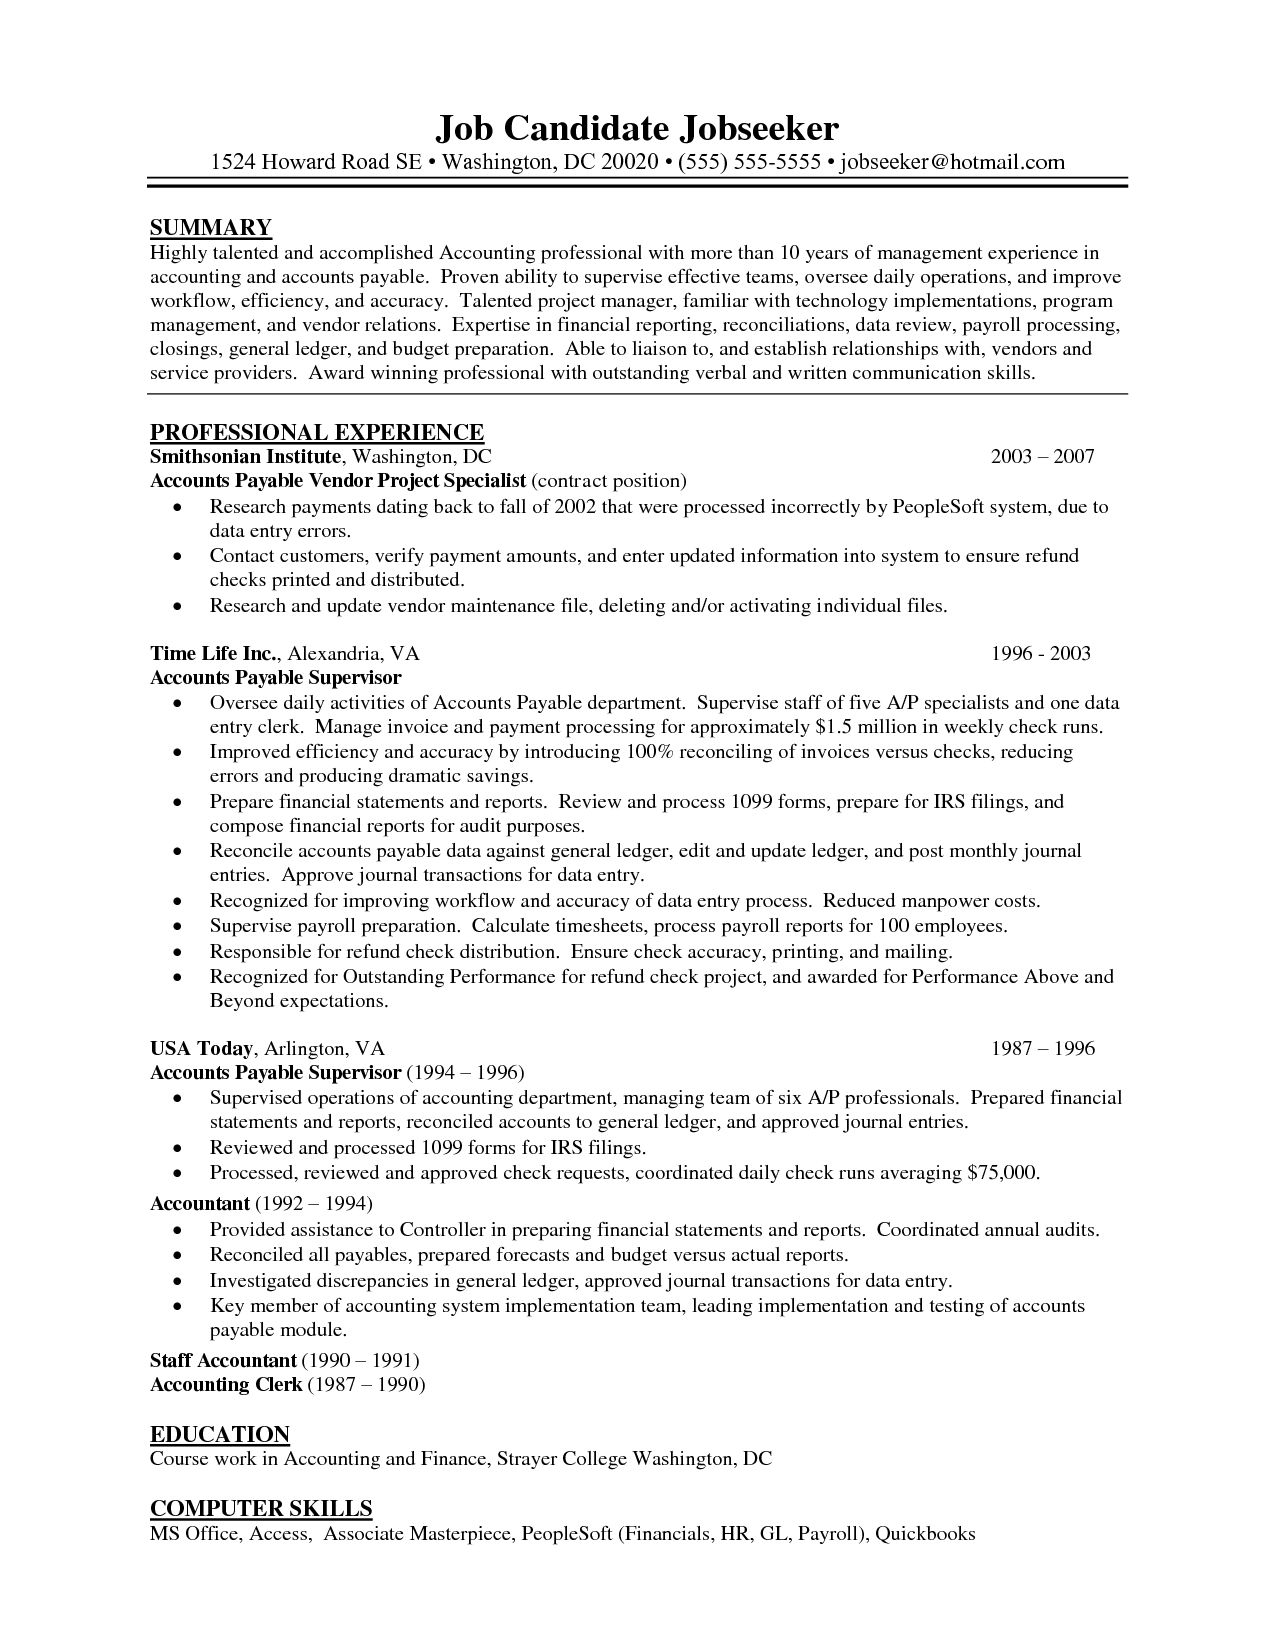 Accounts Payable Resume Samples Enchanting Resume Examples Accounts Payable  Pinterest  Resume Examples